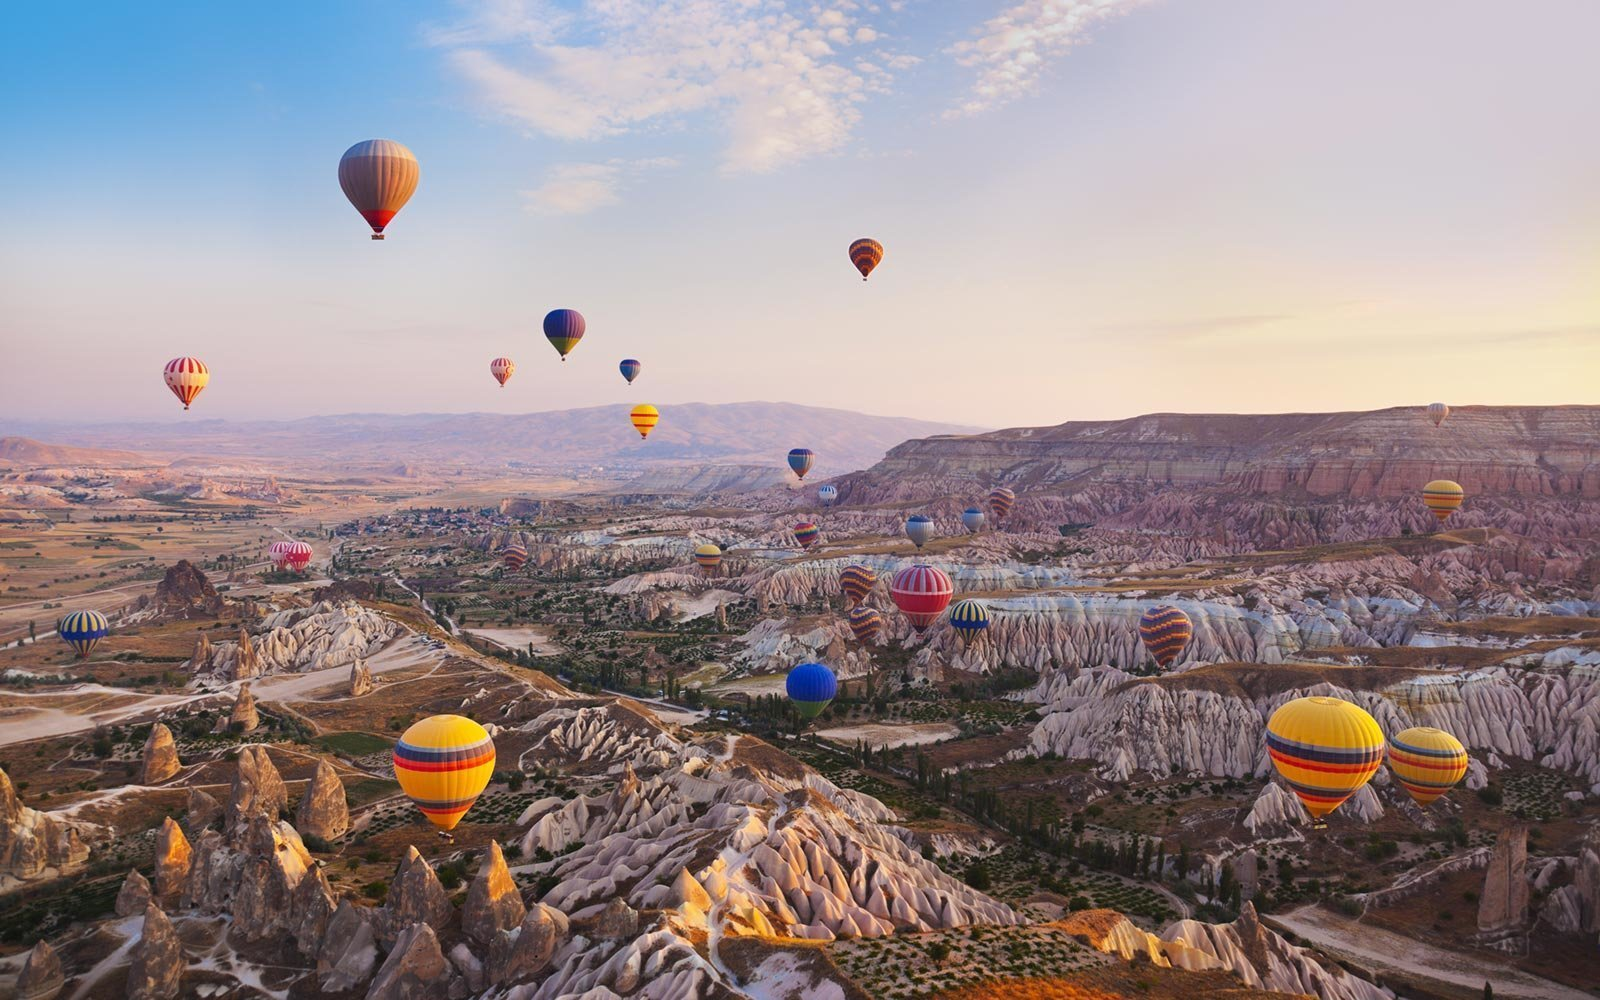 TURKEY'S FIRST INTERNATIONAL BALLOON FESTIVAL IN CAPPADOCIA 7